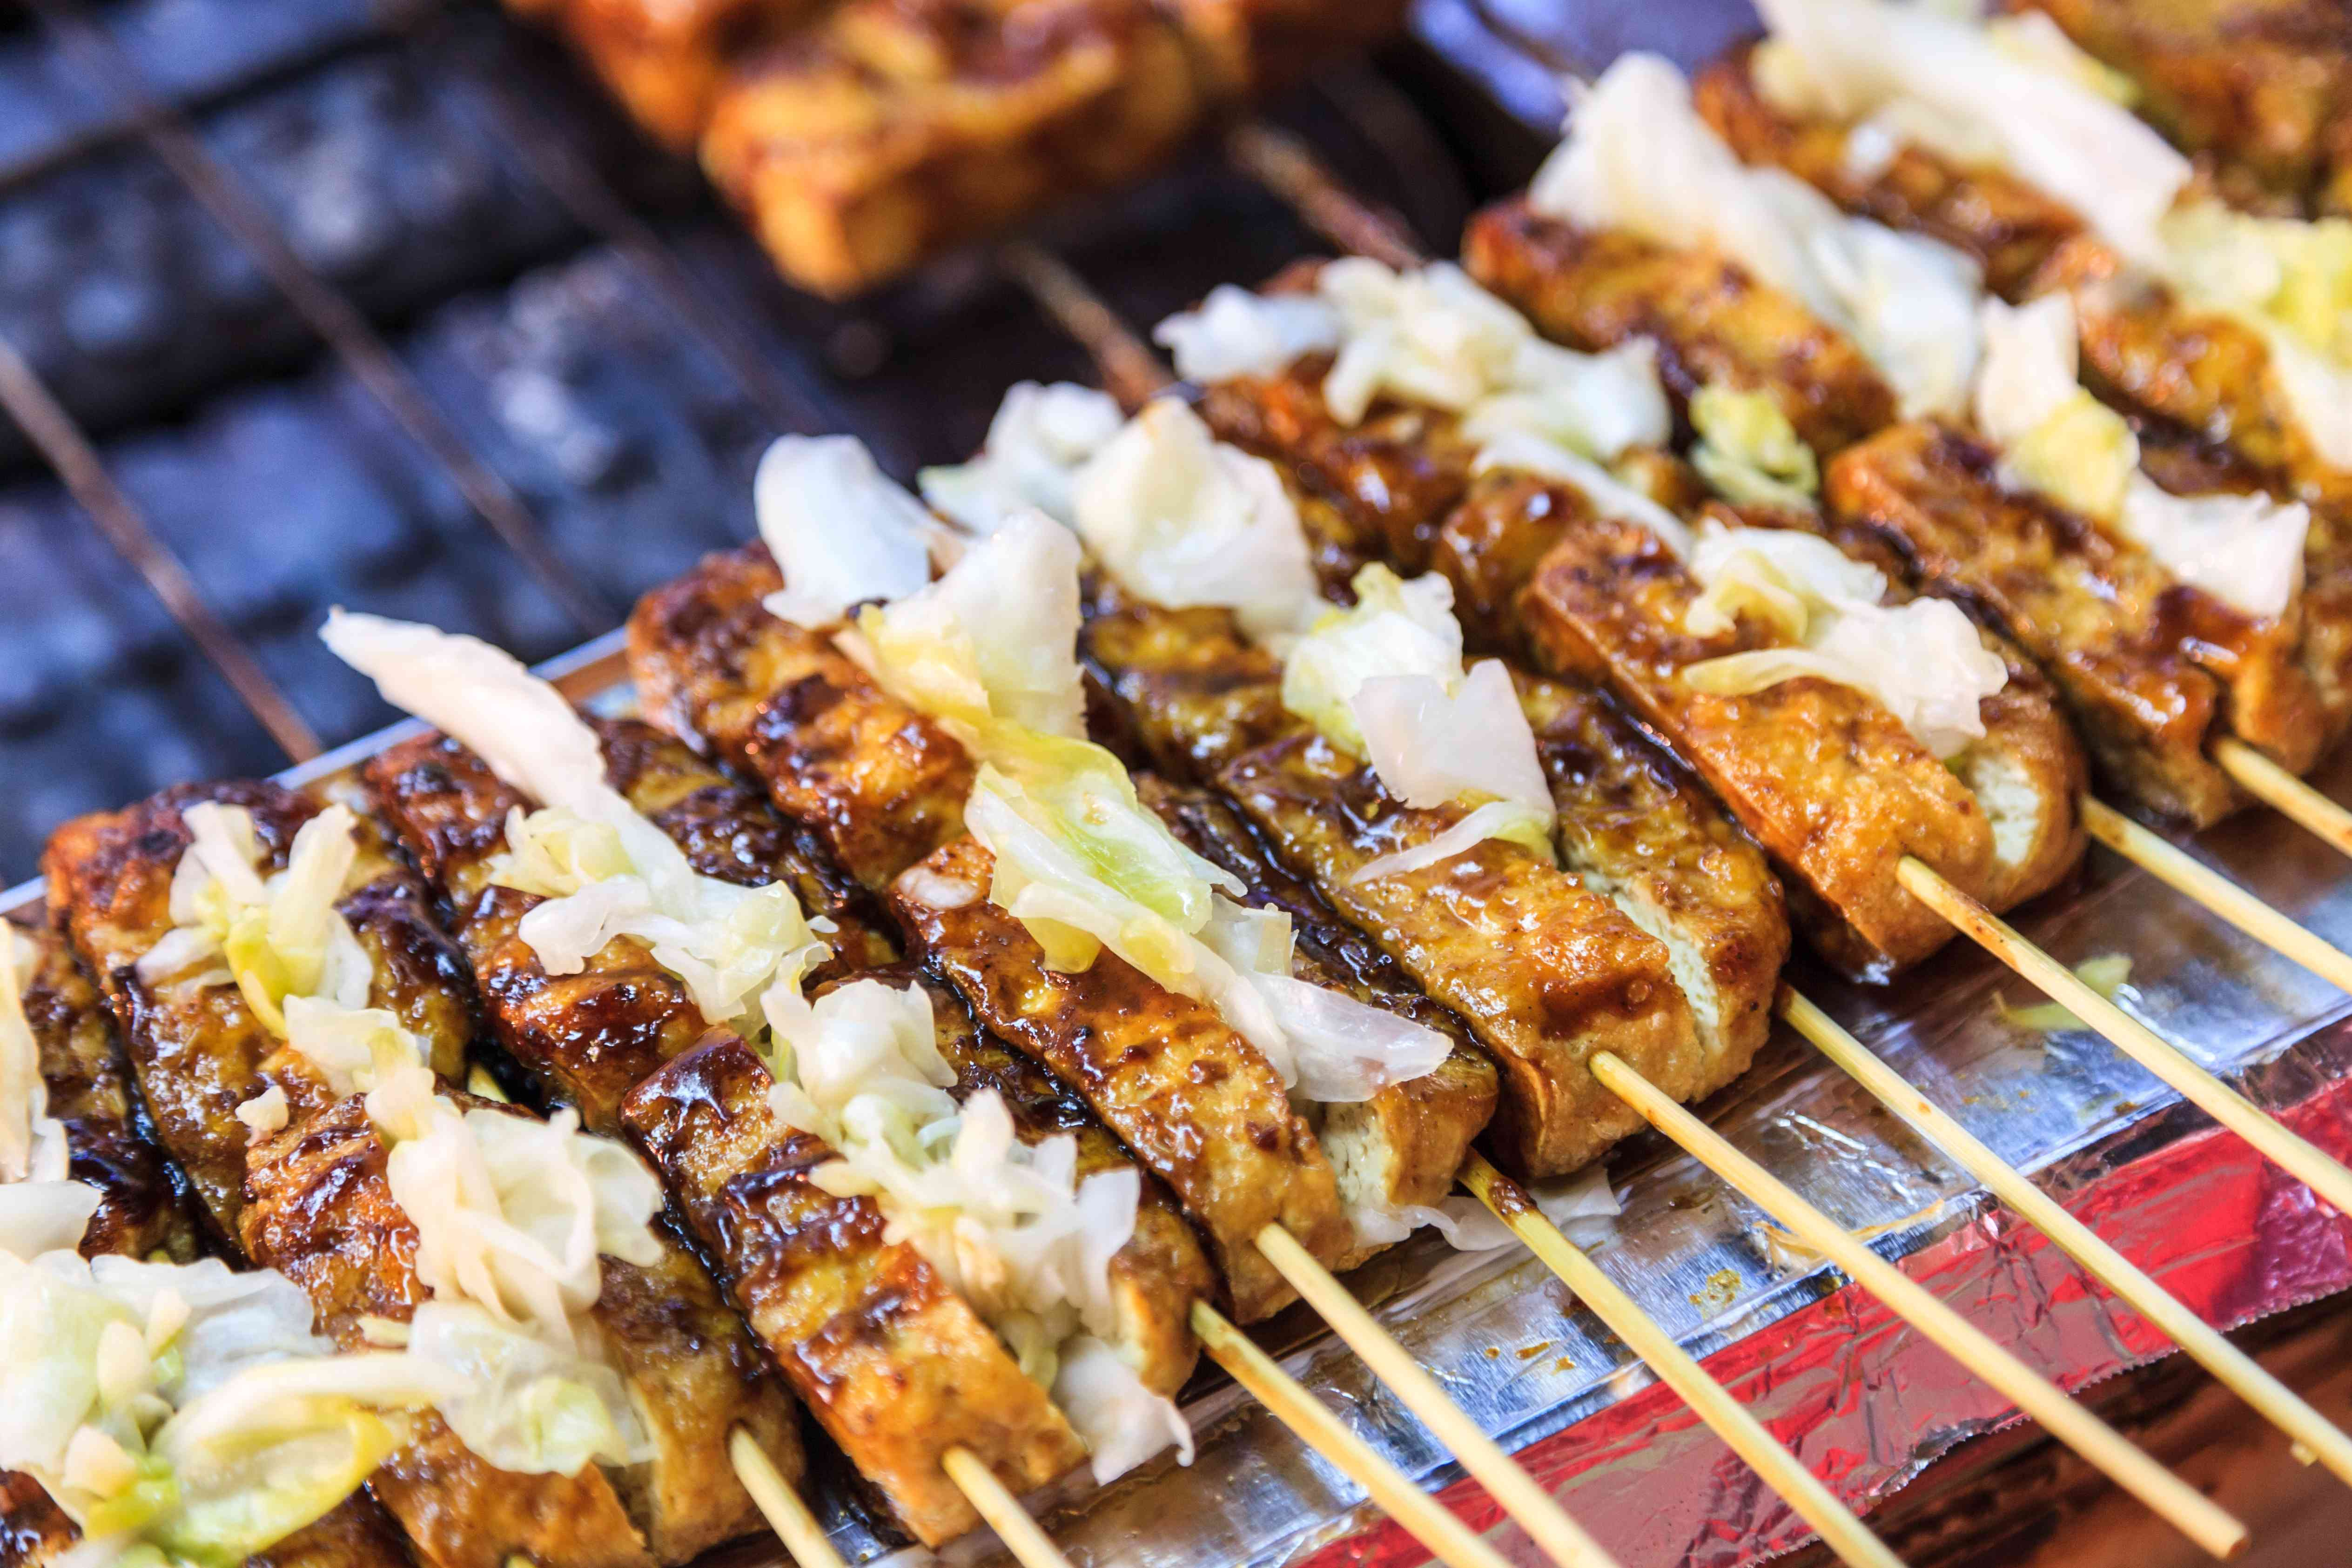 Barbecue stinky tofu on a grill at a night street market